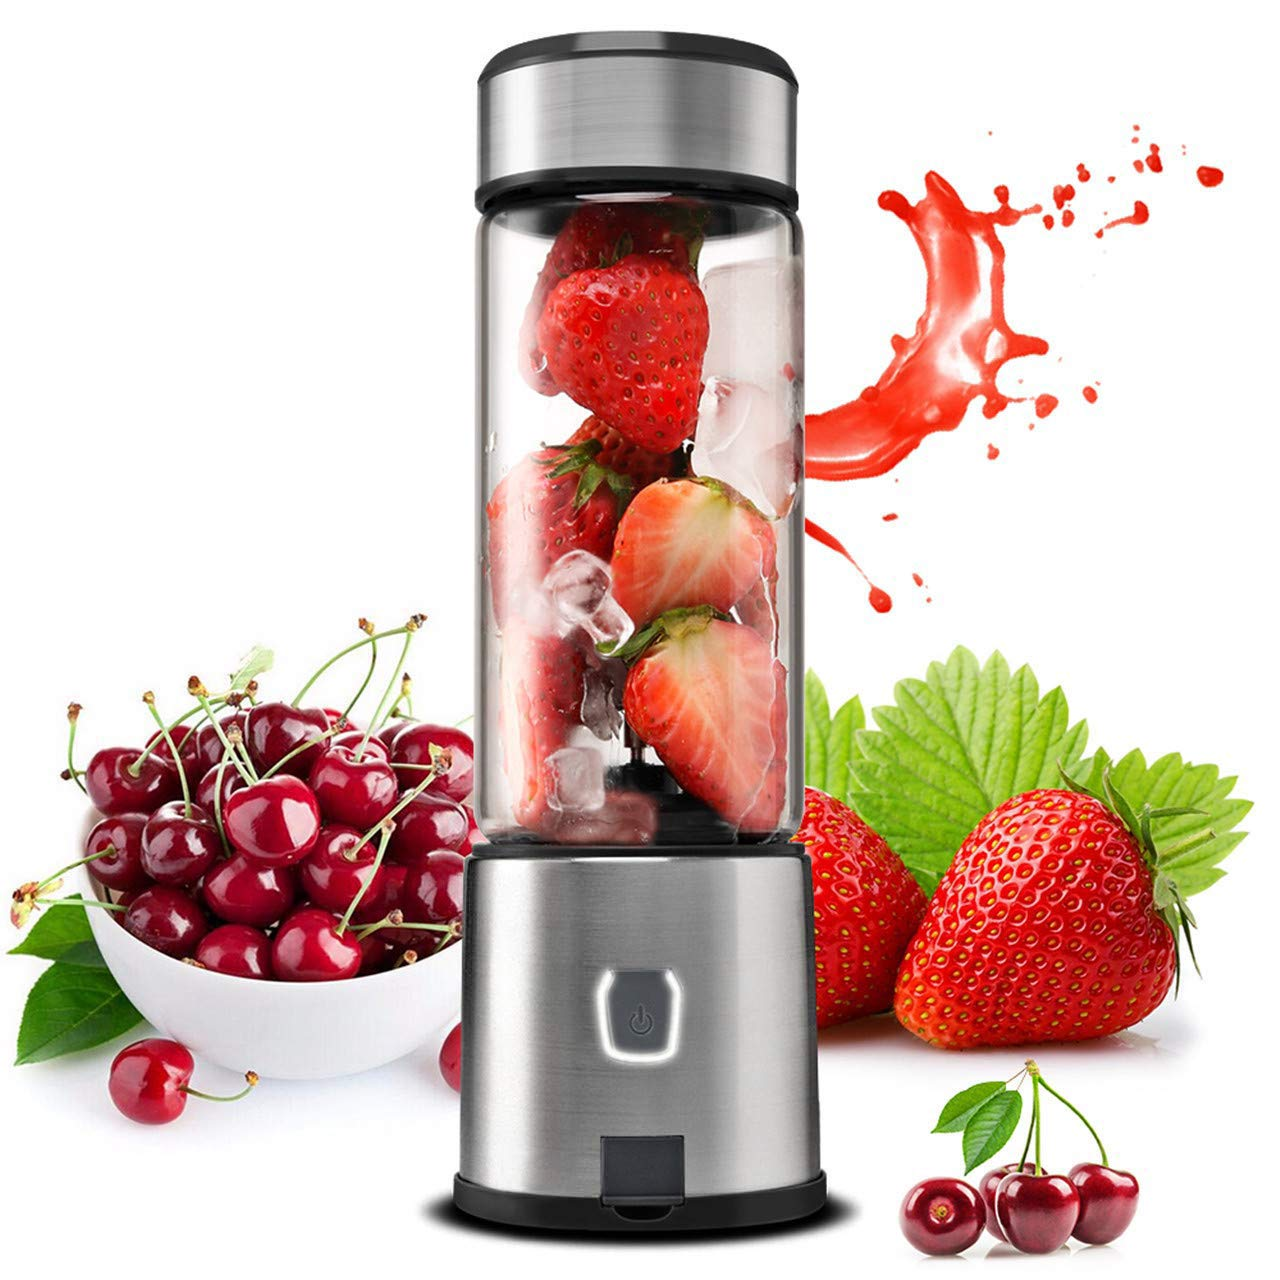 Portable Blender, TTLIFE 5200mAh Glass Smoothie Blender with Single Serve, USB Rechargeable Cordless Personal Blender, Mixer Juicer Cup Portable for Shakes and Smoothies, Baby Food, Protein Shake -Black by TTLIFE